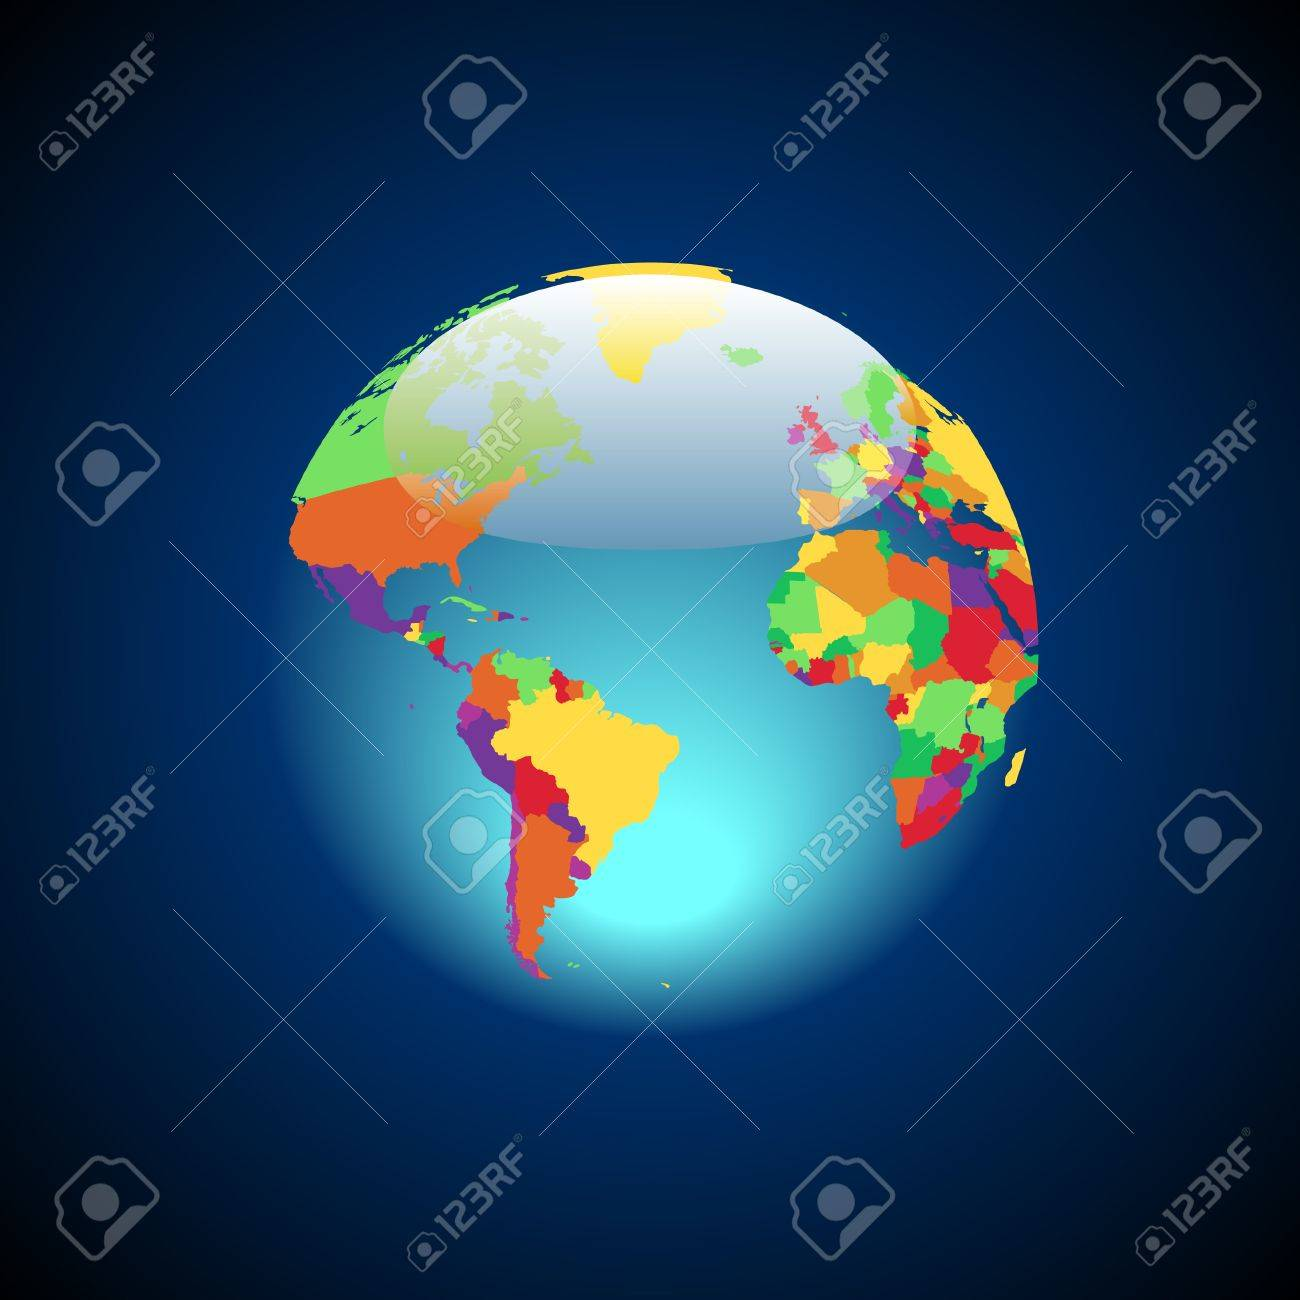 Globe with multicolored countries. Vector illustration. Stock Vector - 6676280